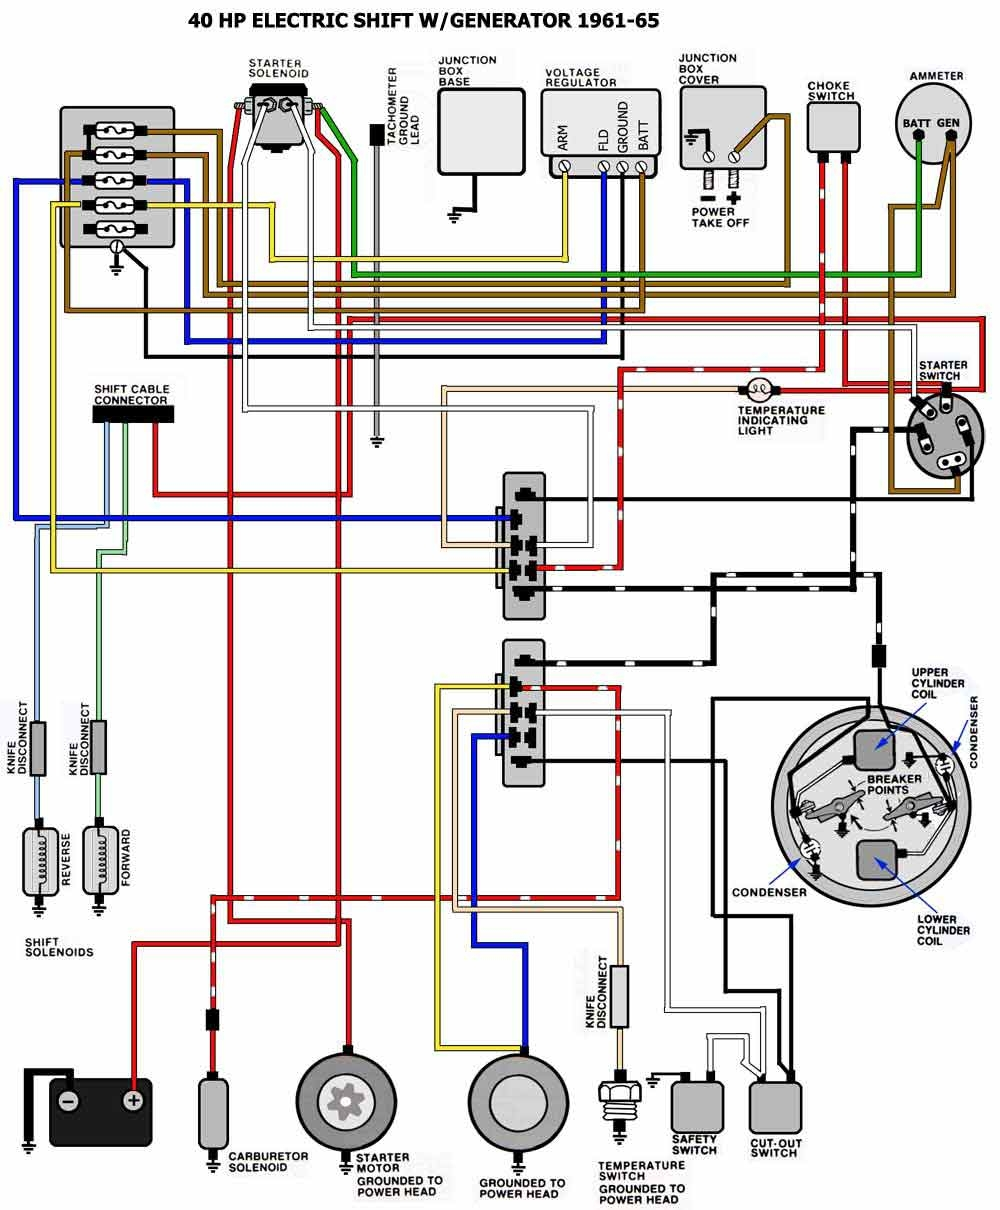 wiring diagram for a mercury outboard ignition switch wiring diagram for a 3 way toggle switch 1 volume mercury outboard wiring diagram ignition switch | free ...